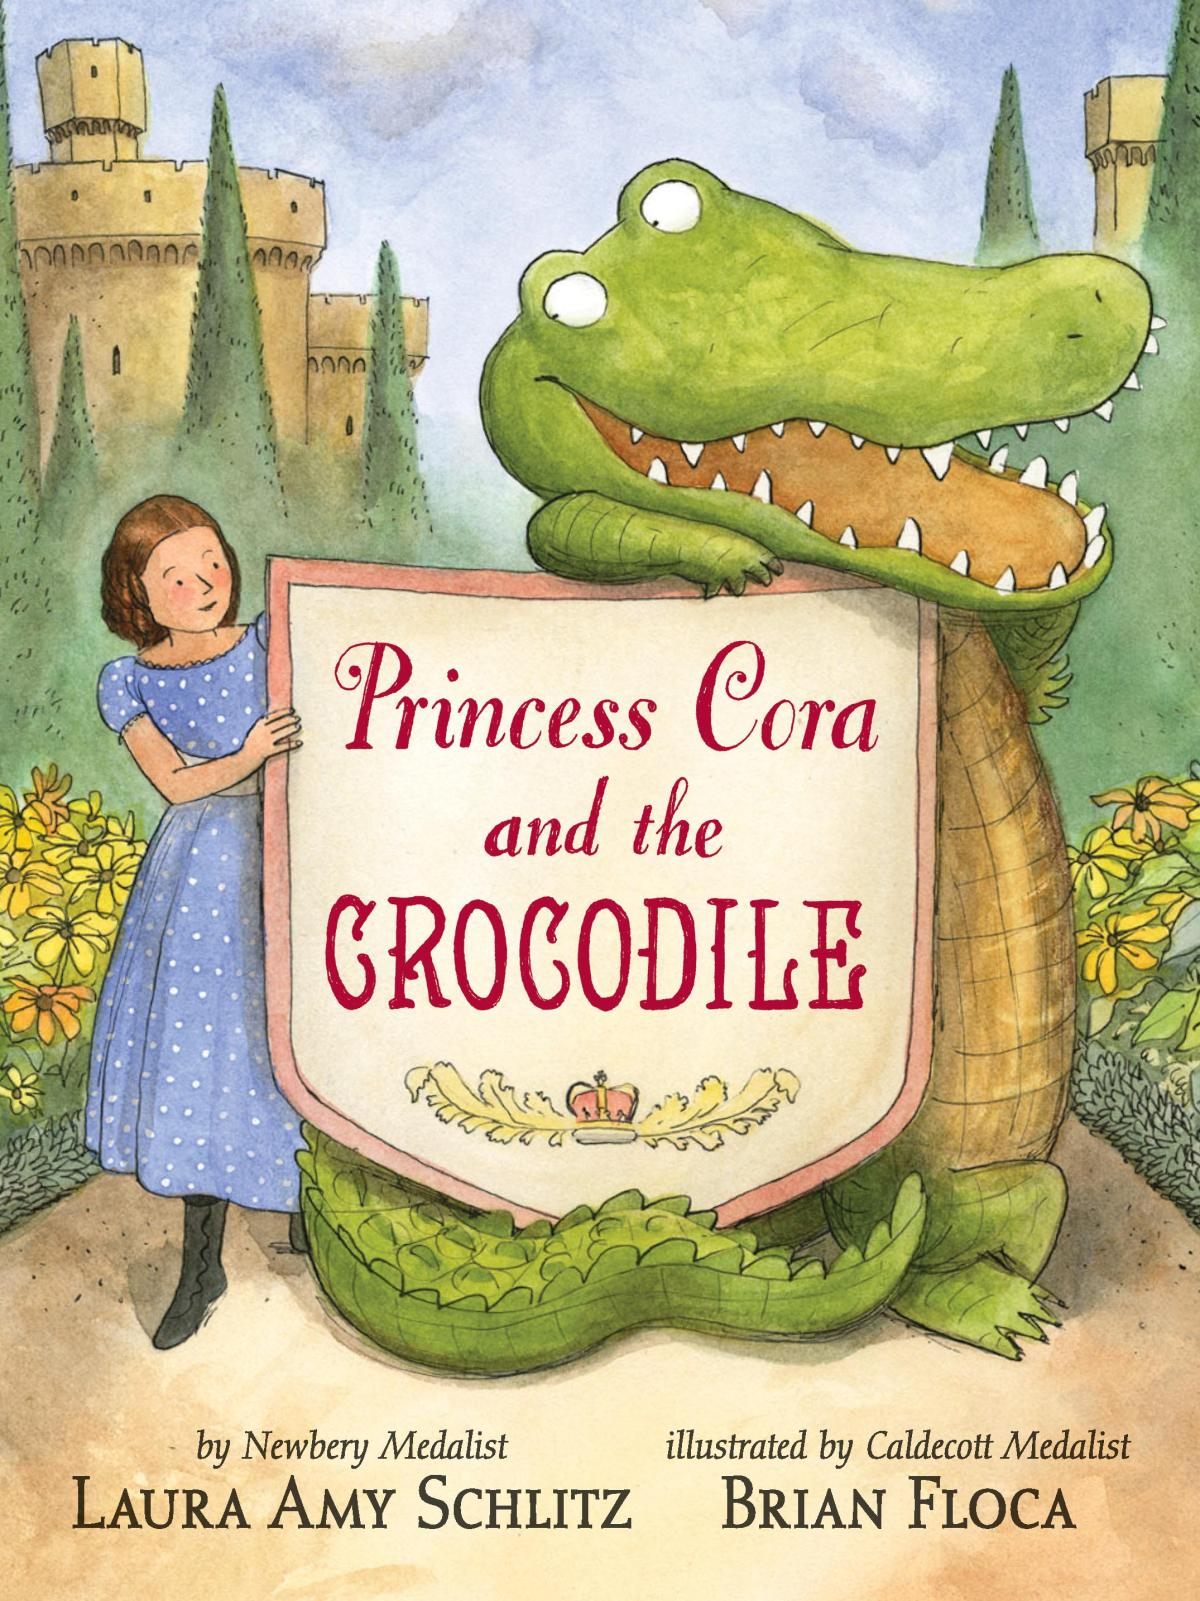 princess cora and the crocodile cover image